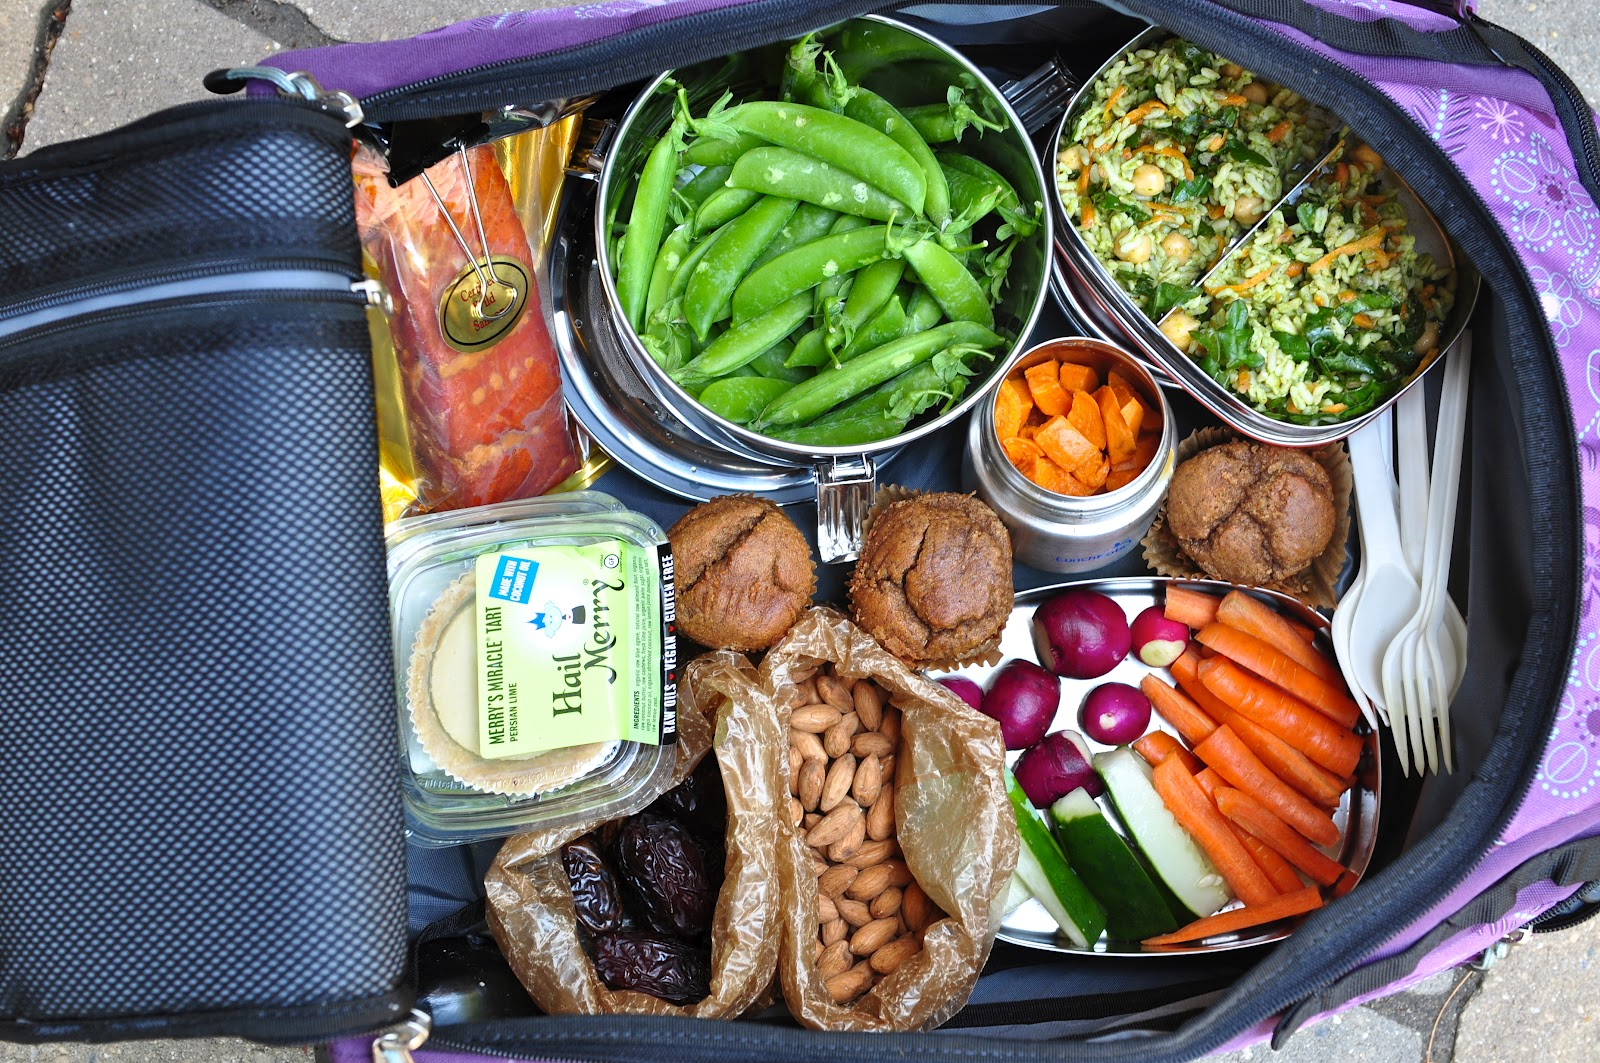 Nourishing MealsR Packing Healthy Food For Air Travel